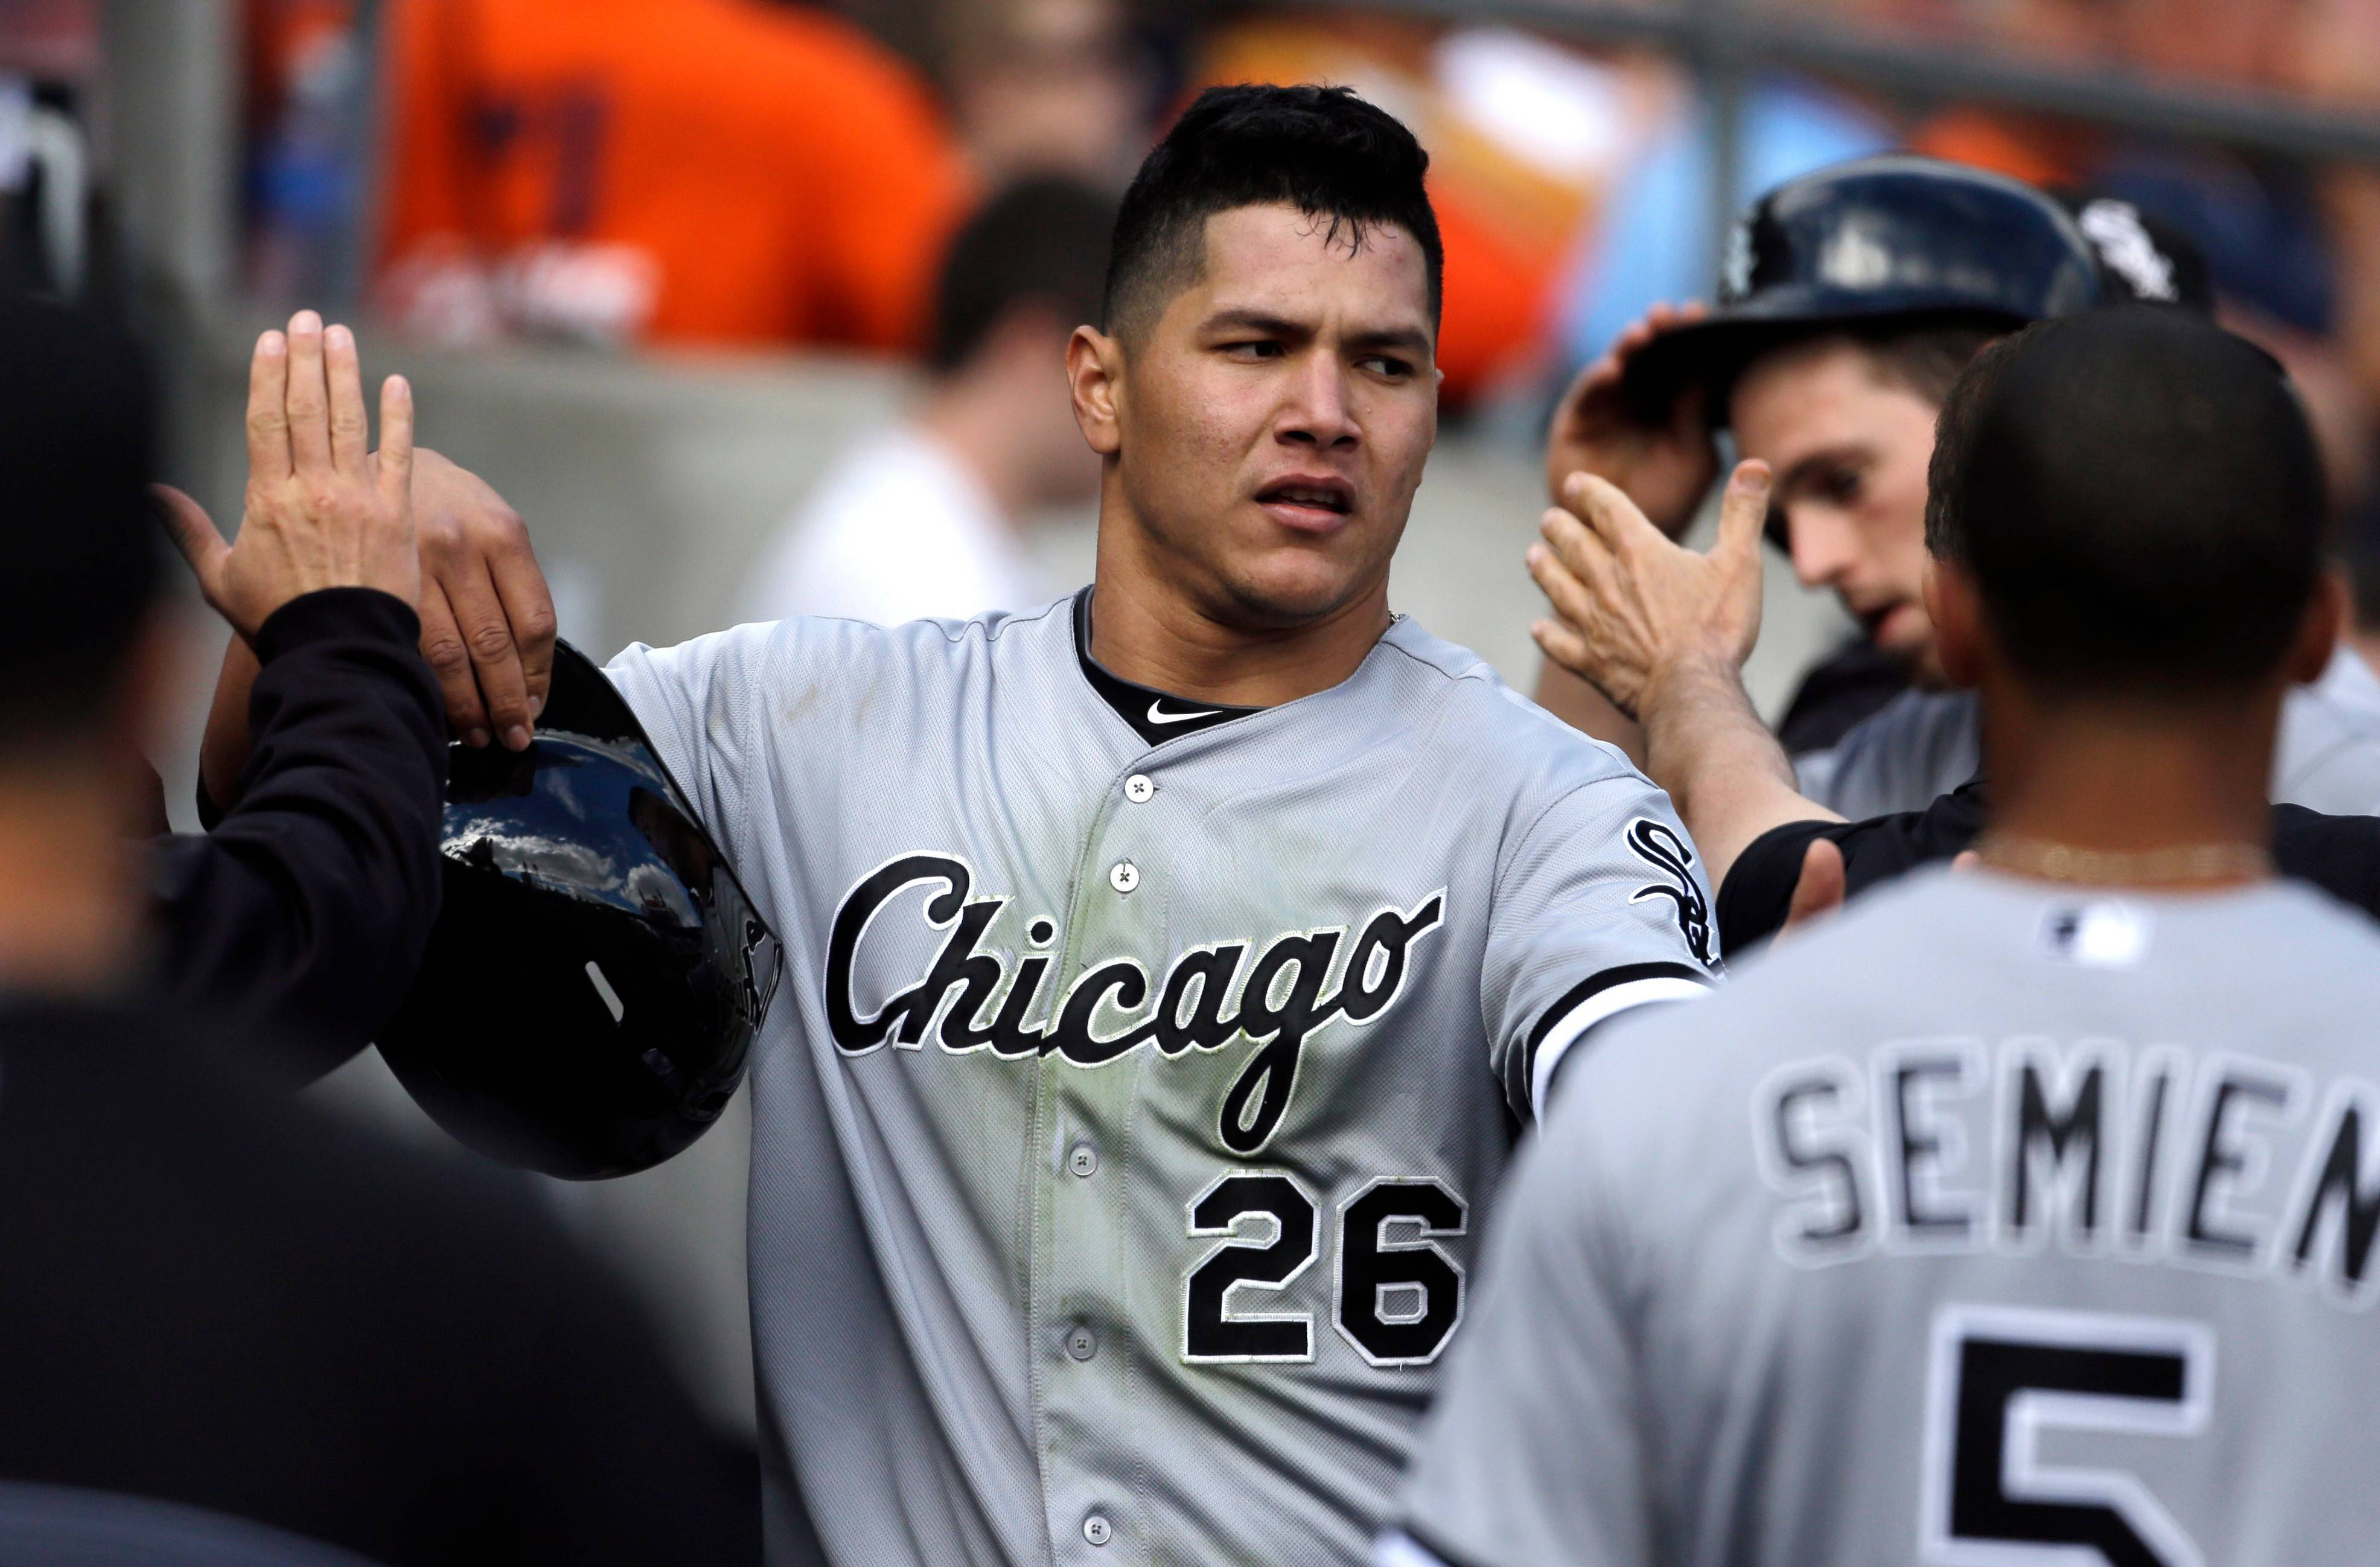 2014 will not be dull for Cubs, White Sox